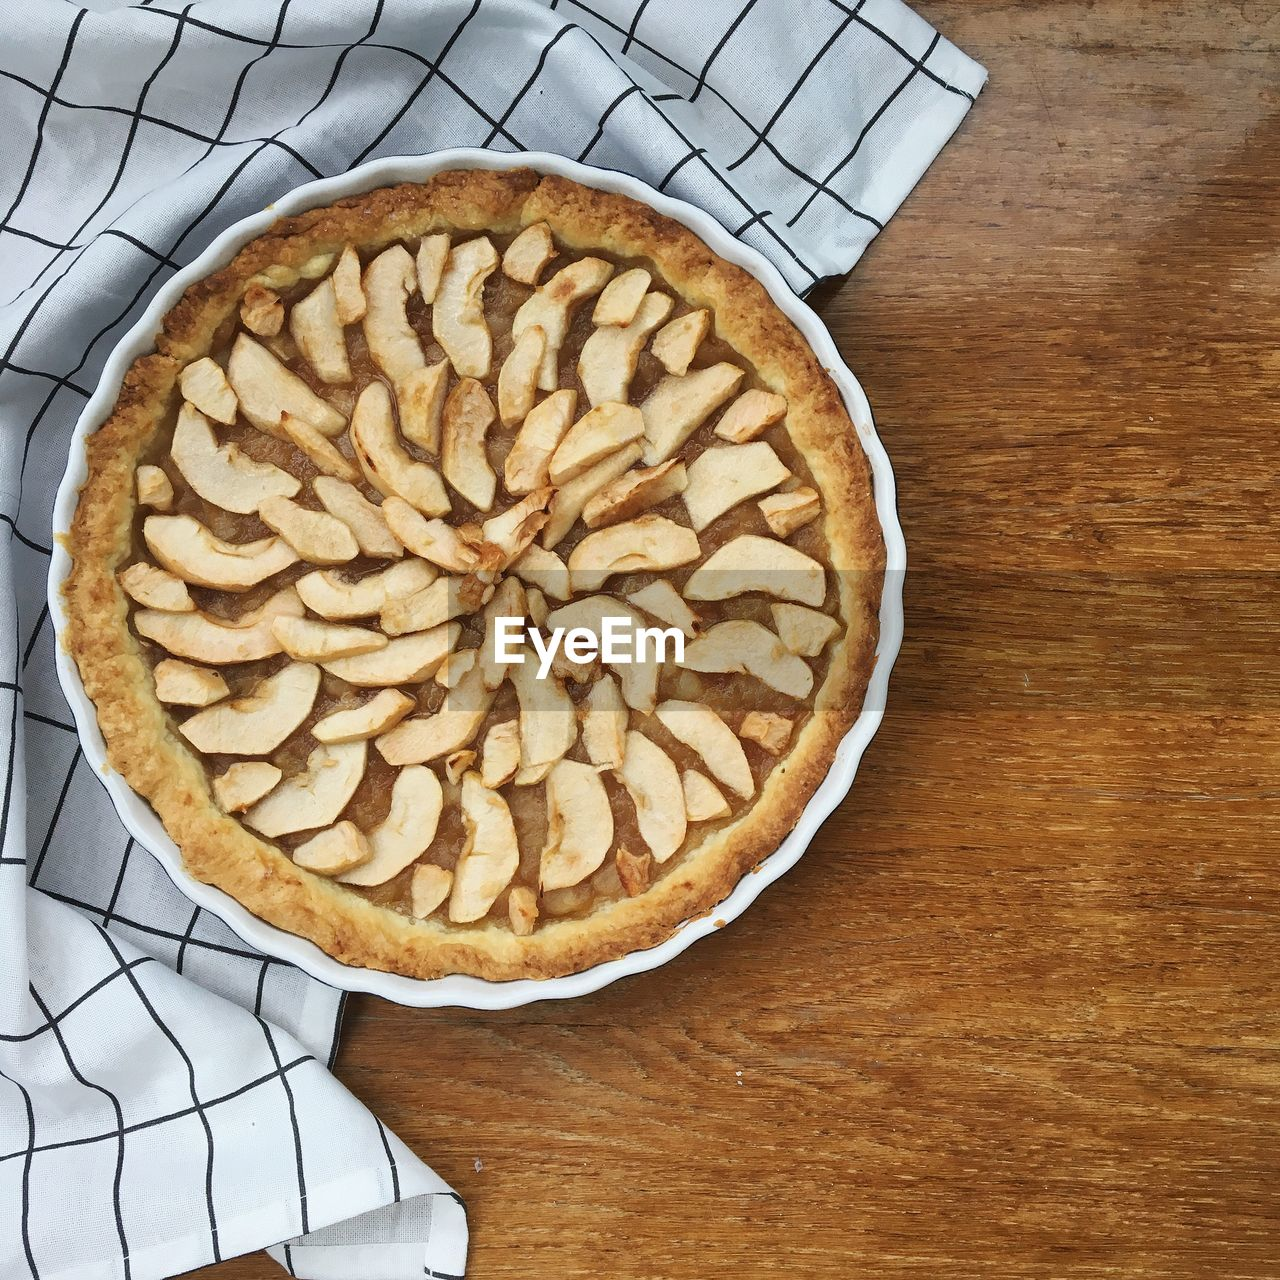 food, food and drink, sweet food, freshness, table, dessert, indoors, still life, pie, directly above, high angle view, baked, indulgence, sweet, ready-to-eat, unhealthy eating, no people, apple pie, cake, coffee - drink, temptation, baked pastry item, tart - dessert, breakfast, snack